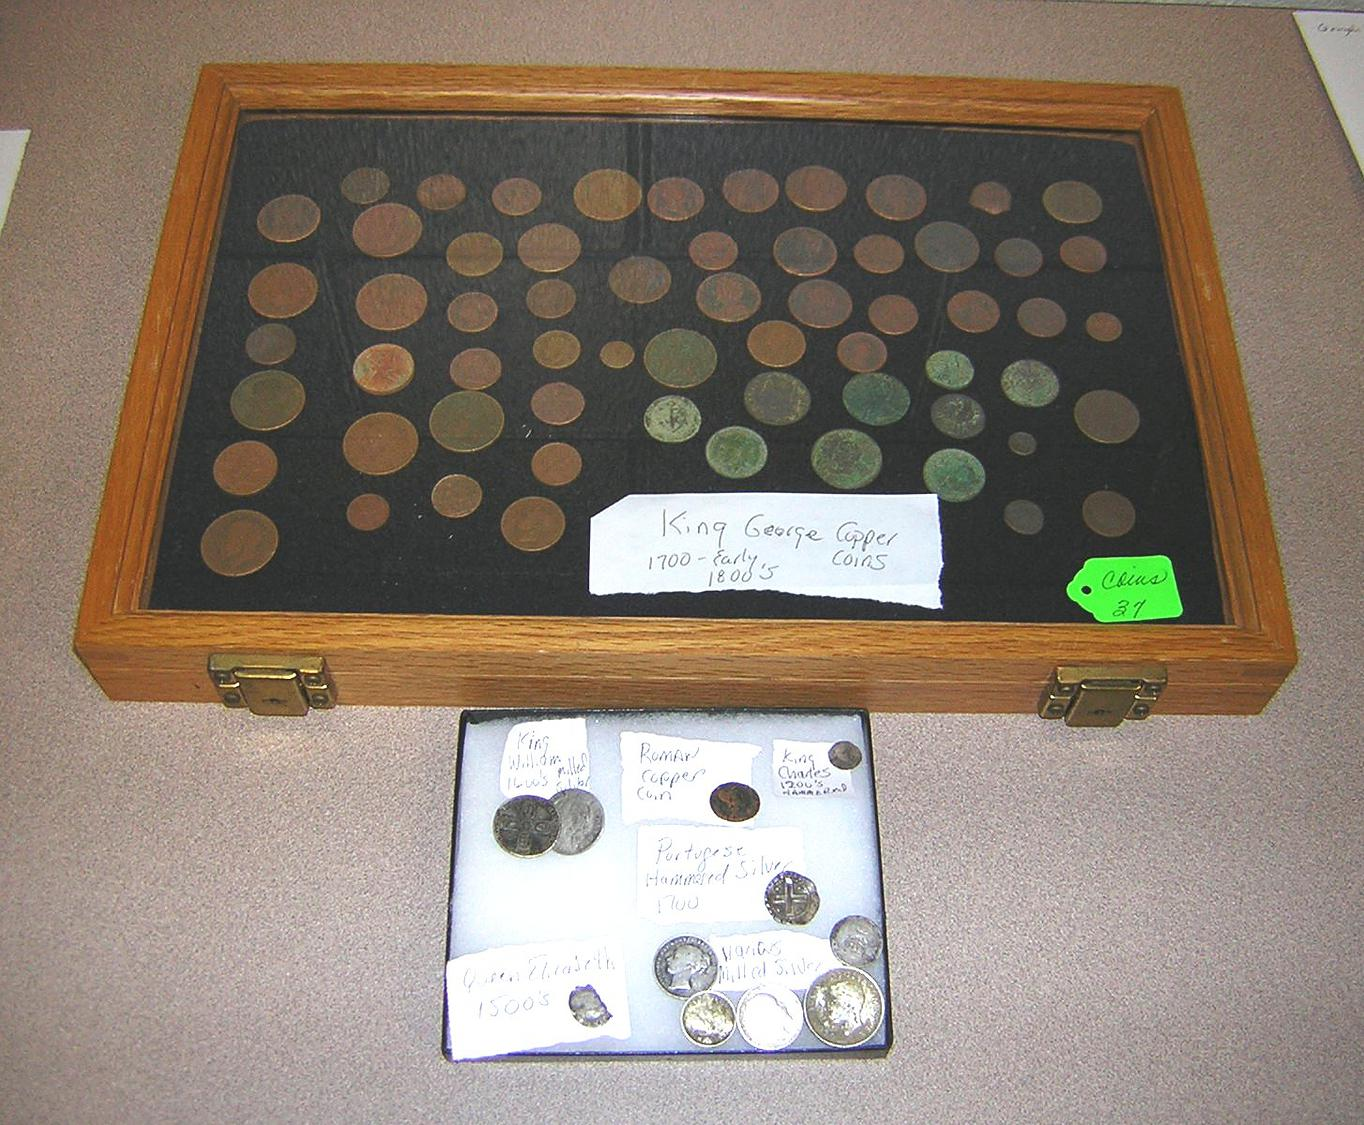 Coins: Doug Sortino